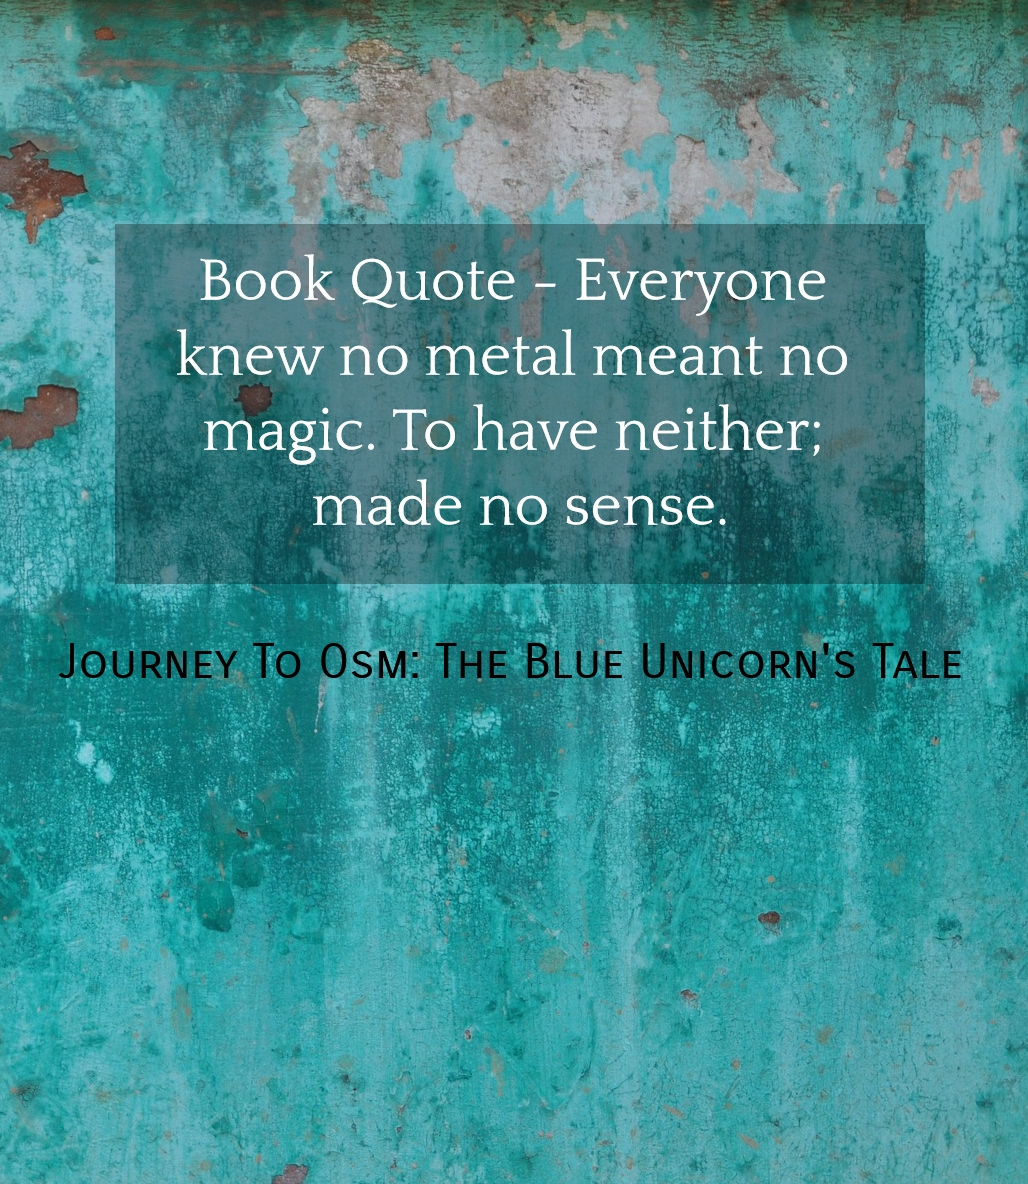 Book Quote - Everyone knew...